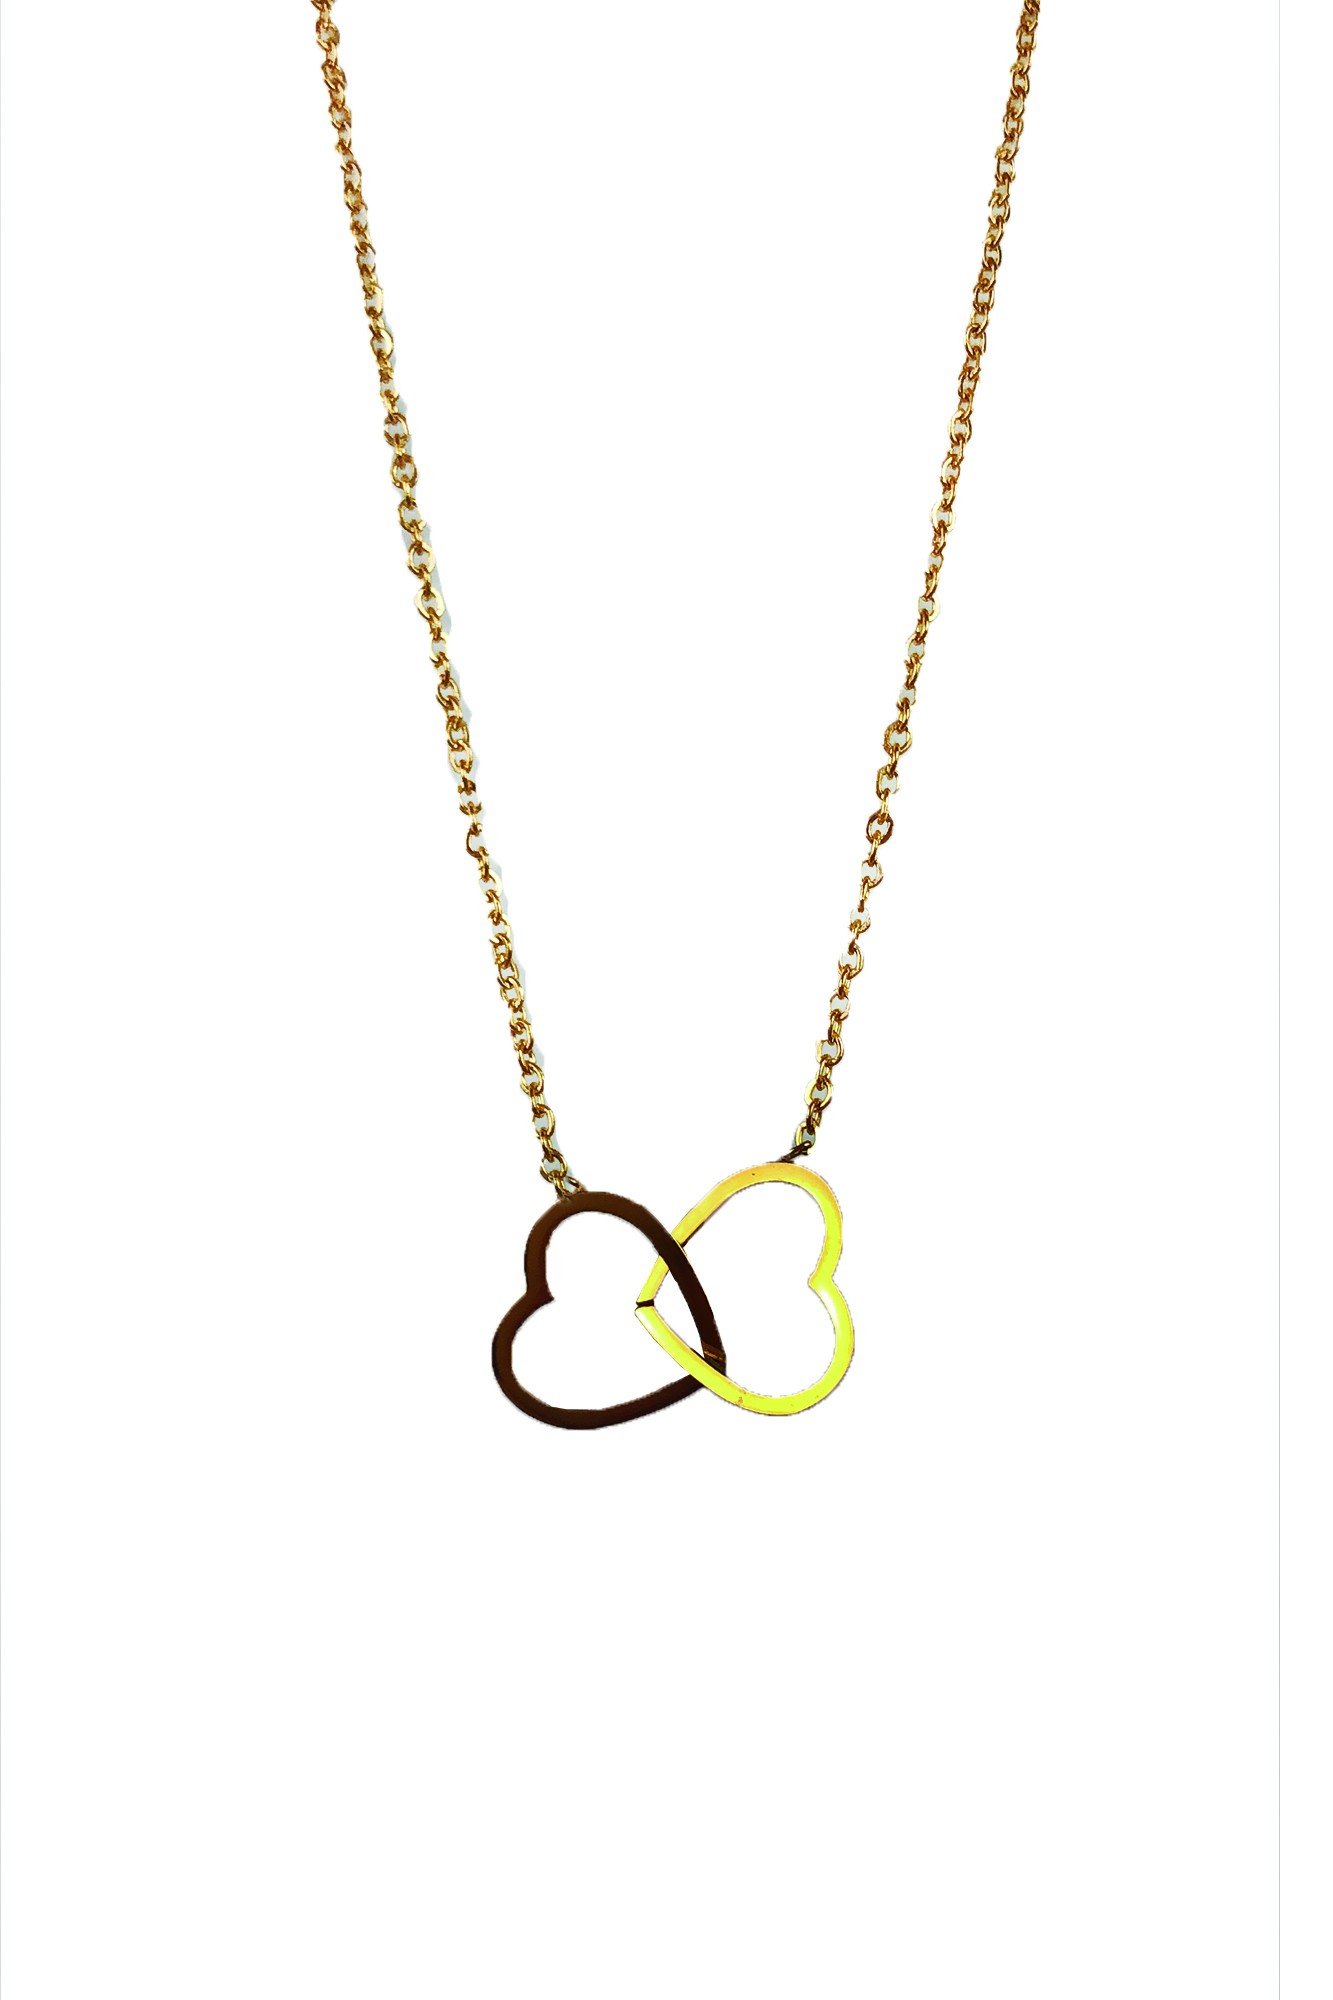 CORAZONES NECKLACE